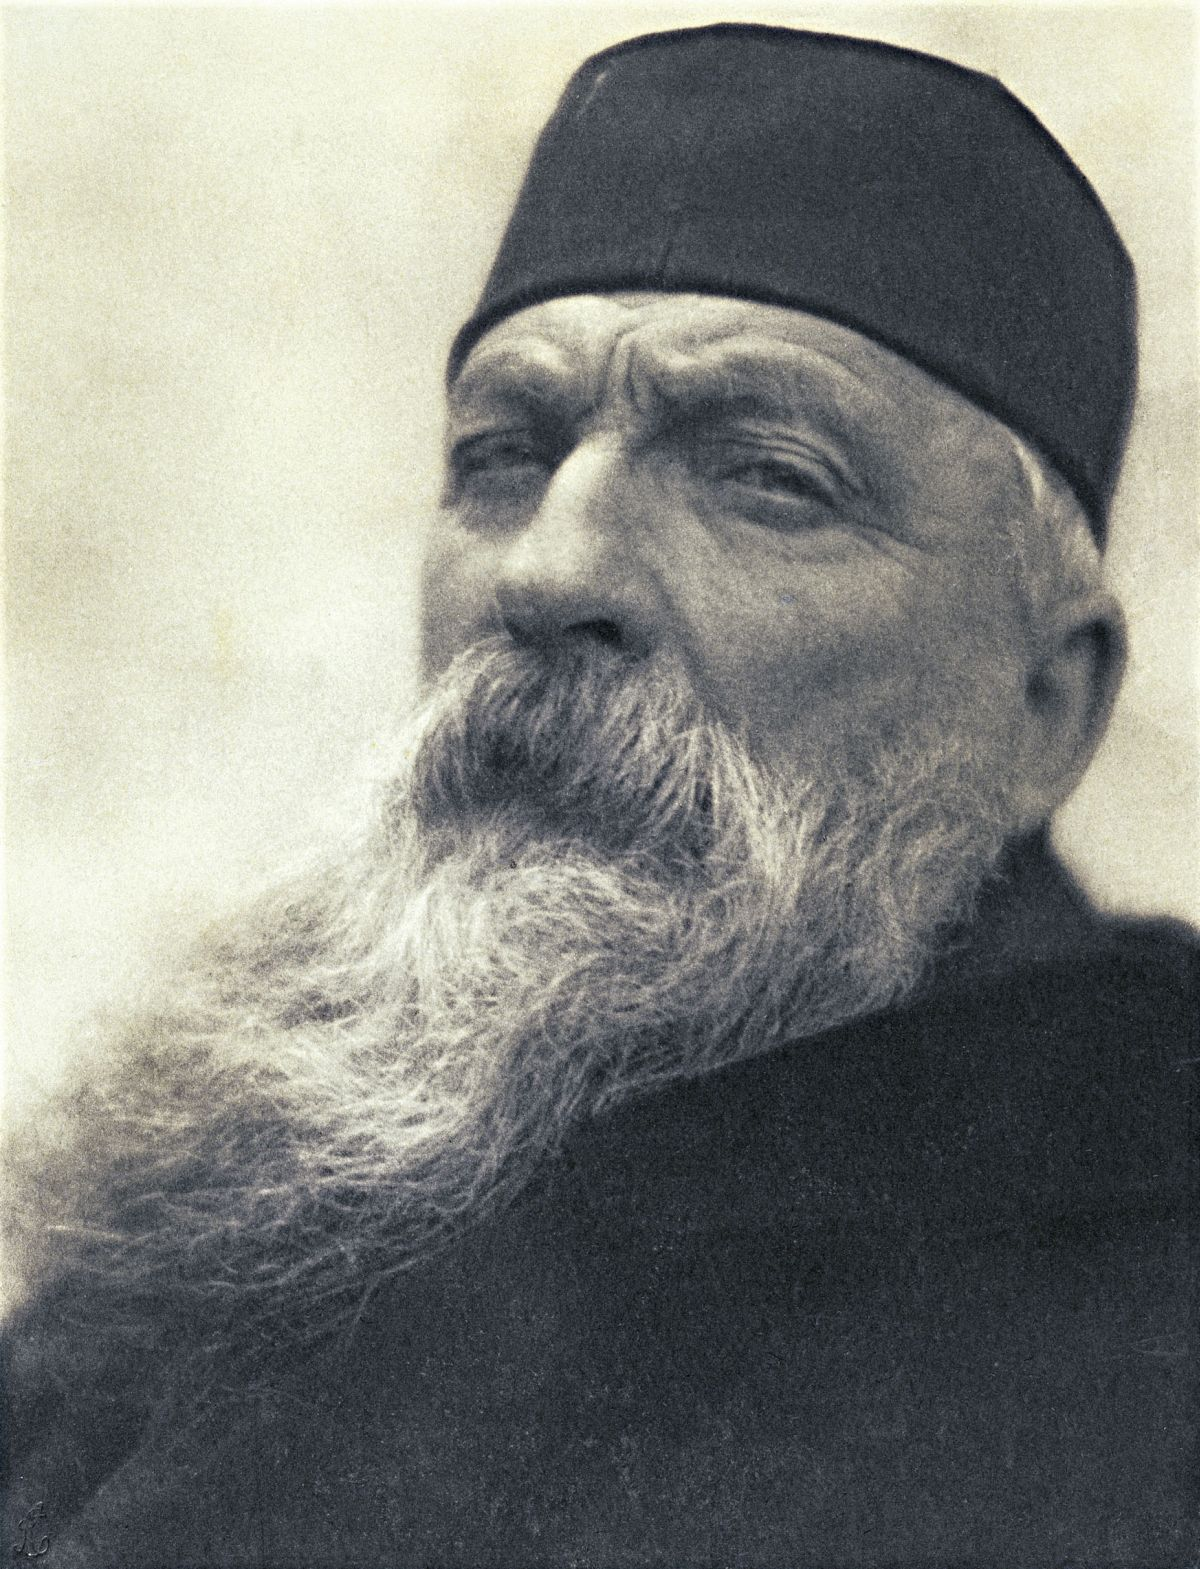 missfolly:  Auguste Rodin (12 November 1840 – 17 November 1917) 'The world famous 77 year old French sculptor Auguste Rodin froze to death in an unheated attic in Meudon, France. In 1923, Marcell Tirel, Rodin's secretary, published a book alleging this and that Rodin had applied to the government for quarters as warm as those wherein his statues were stored, but the government turned him down. It is said that other officials and friends promised coal for heating but never sent it.'